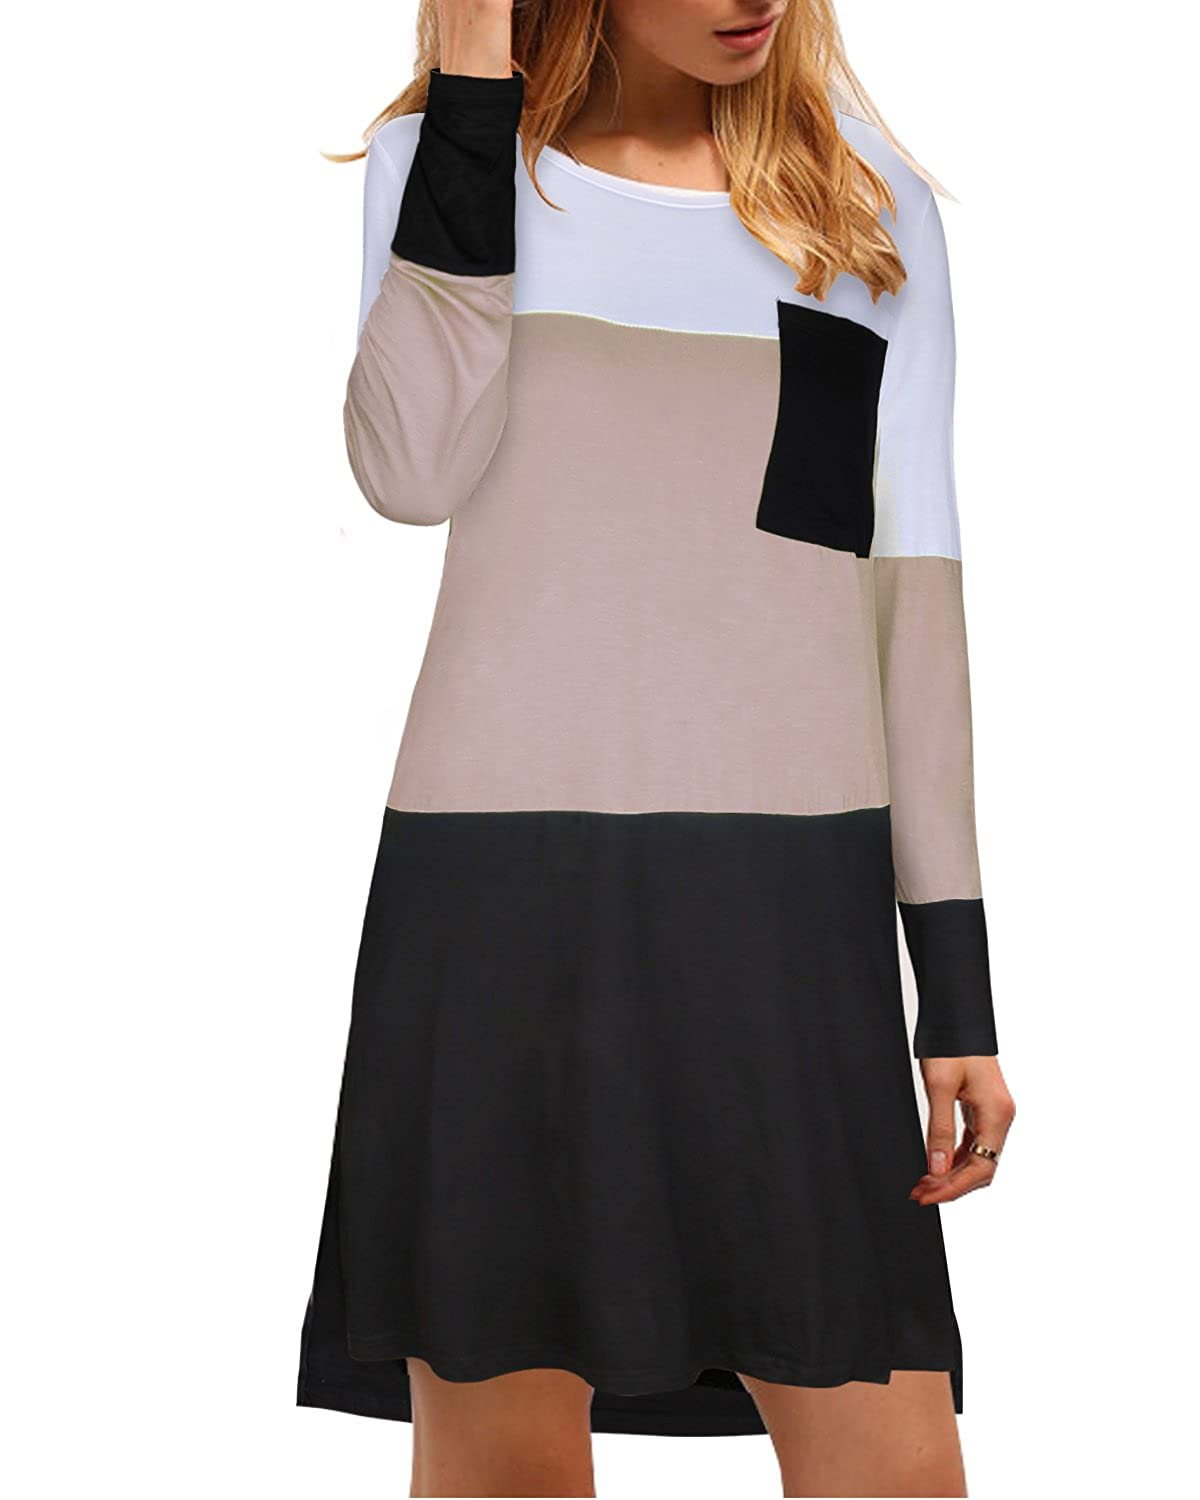 Kilig Women's Long Sleeve Color Block Pocket Loose Casual Dress